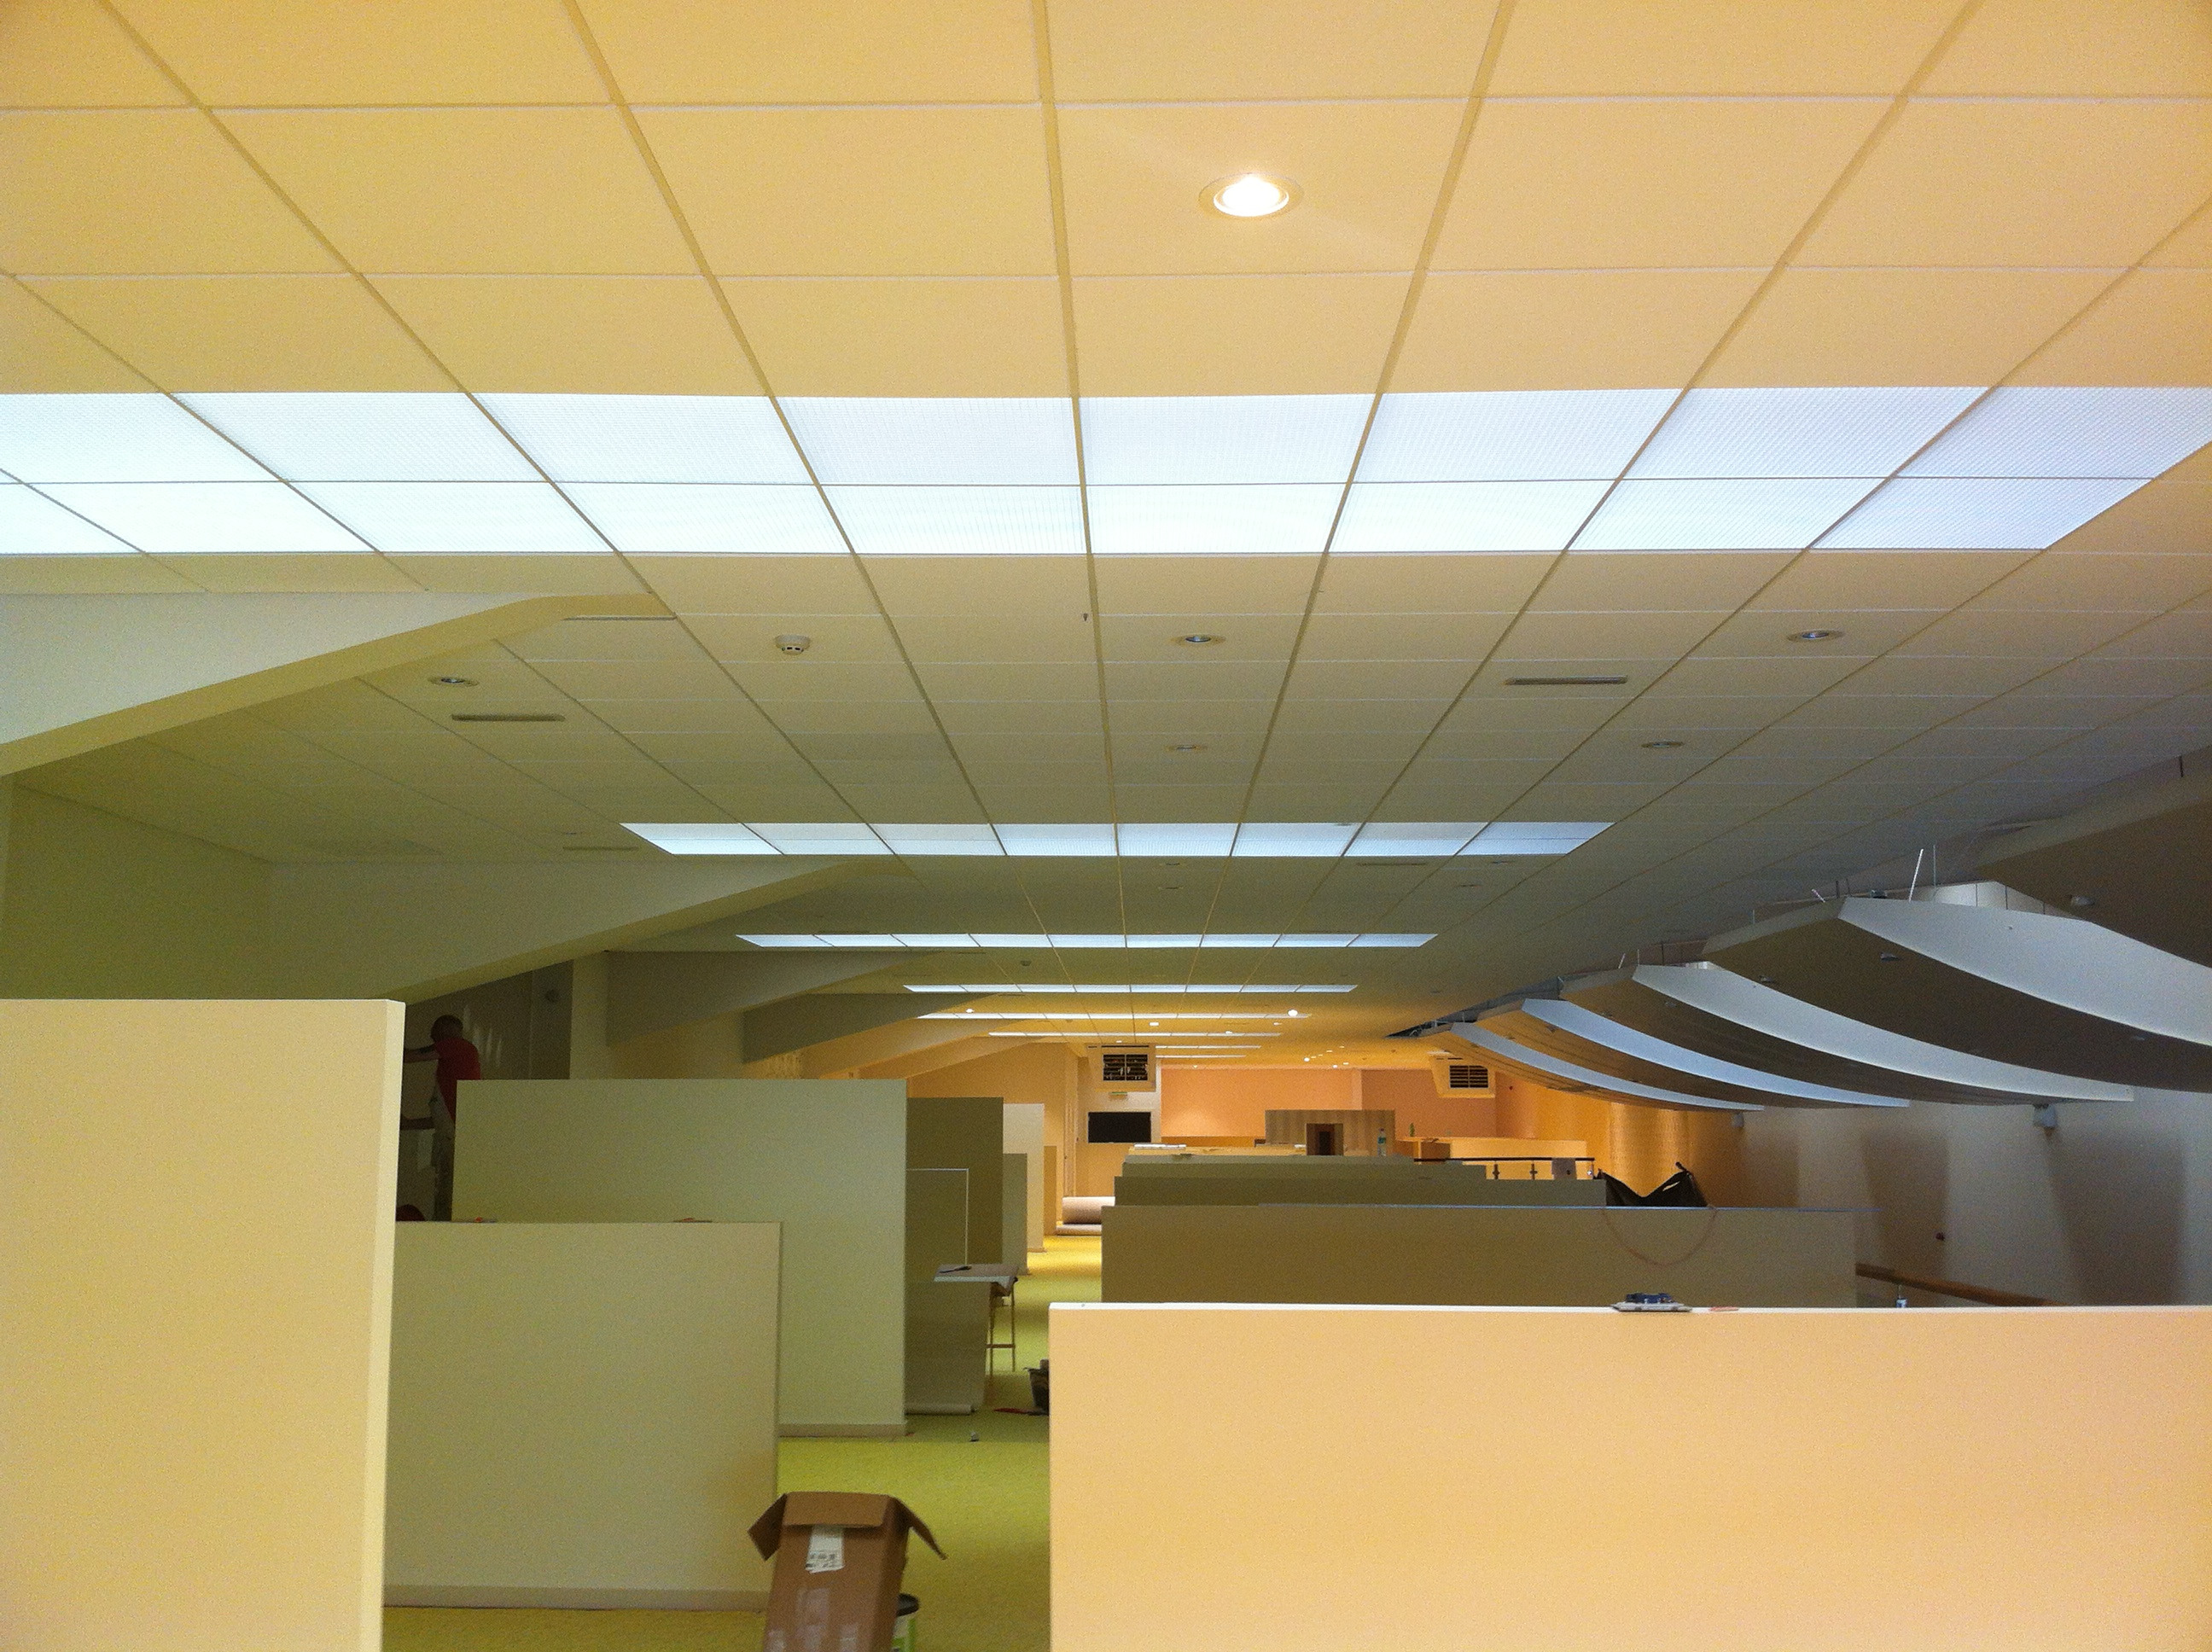 ceiling set suspended ceilings rondo works shepparton up grid exposed plaster browns